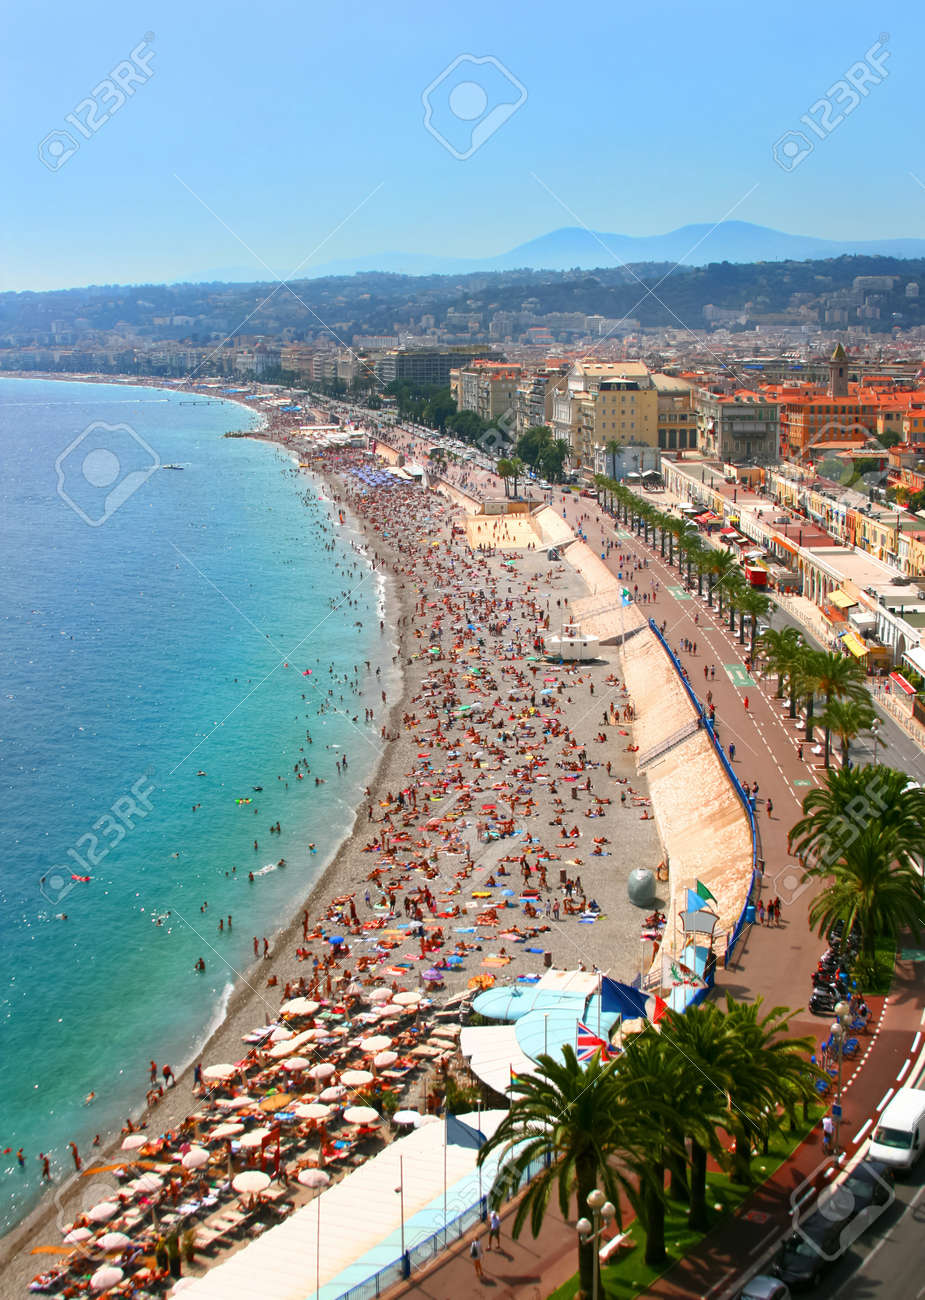 Luxury resort of French riviera. Fantastic panorama city of Nice in France. Sunny, summer day. Mediterranean sea, public beach, famous quay, palms and houses of Nice. Stock Photo - 10291300